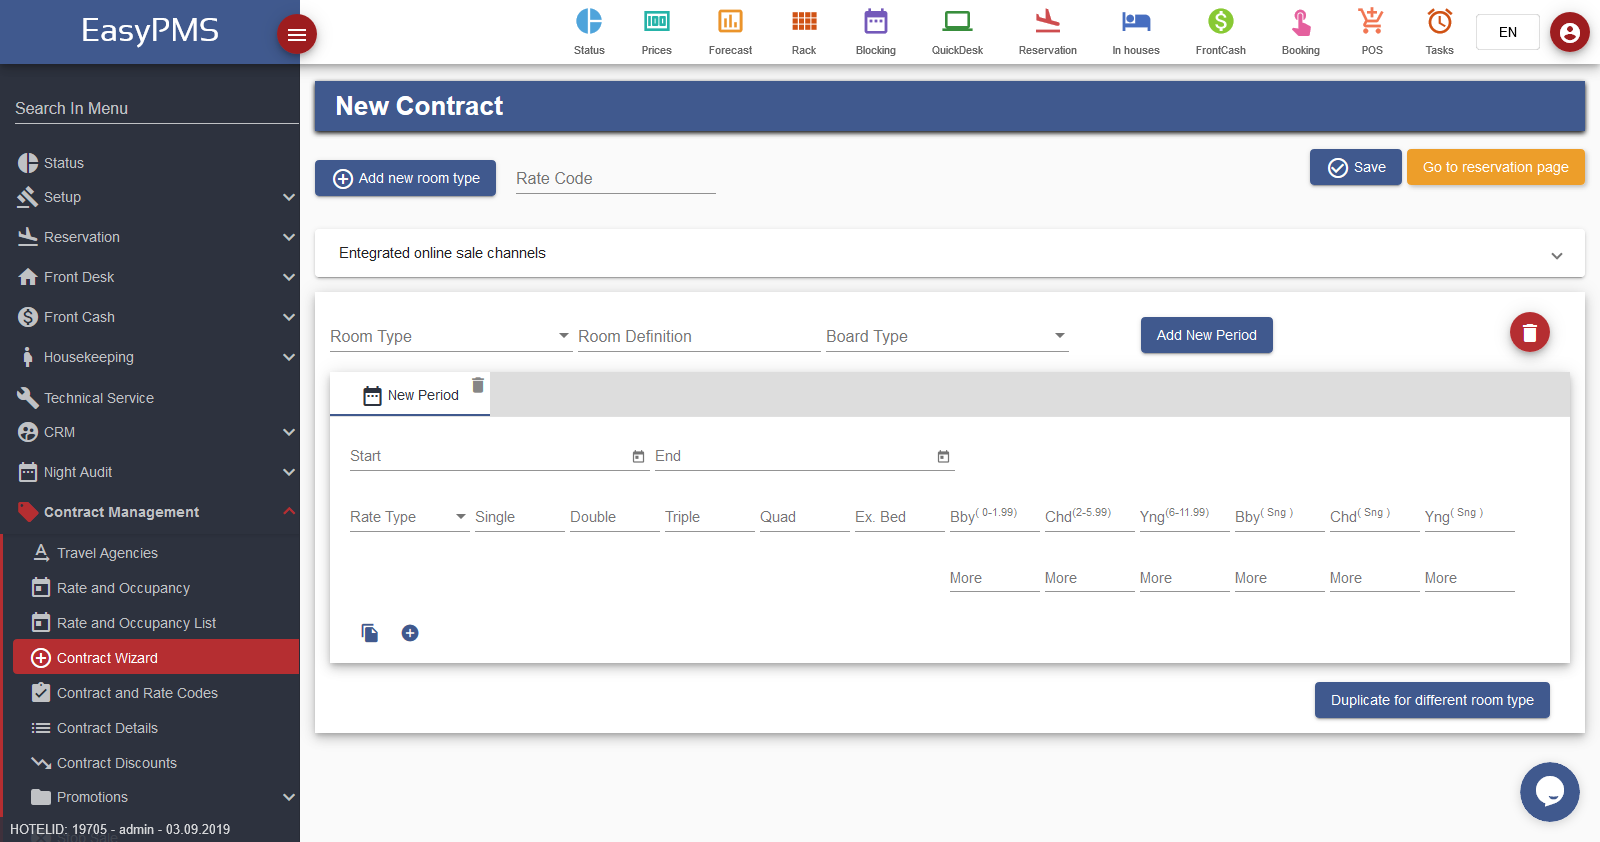 easypms Hotel software Contract Management